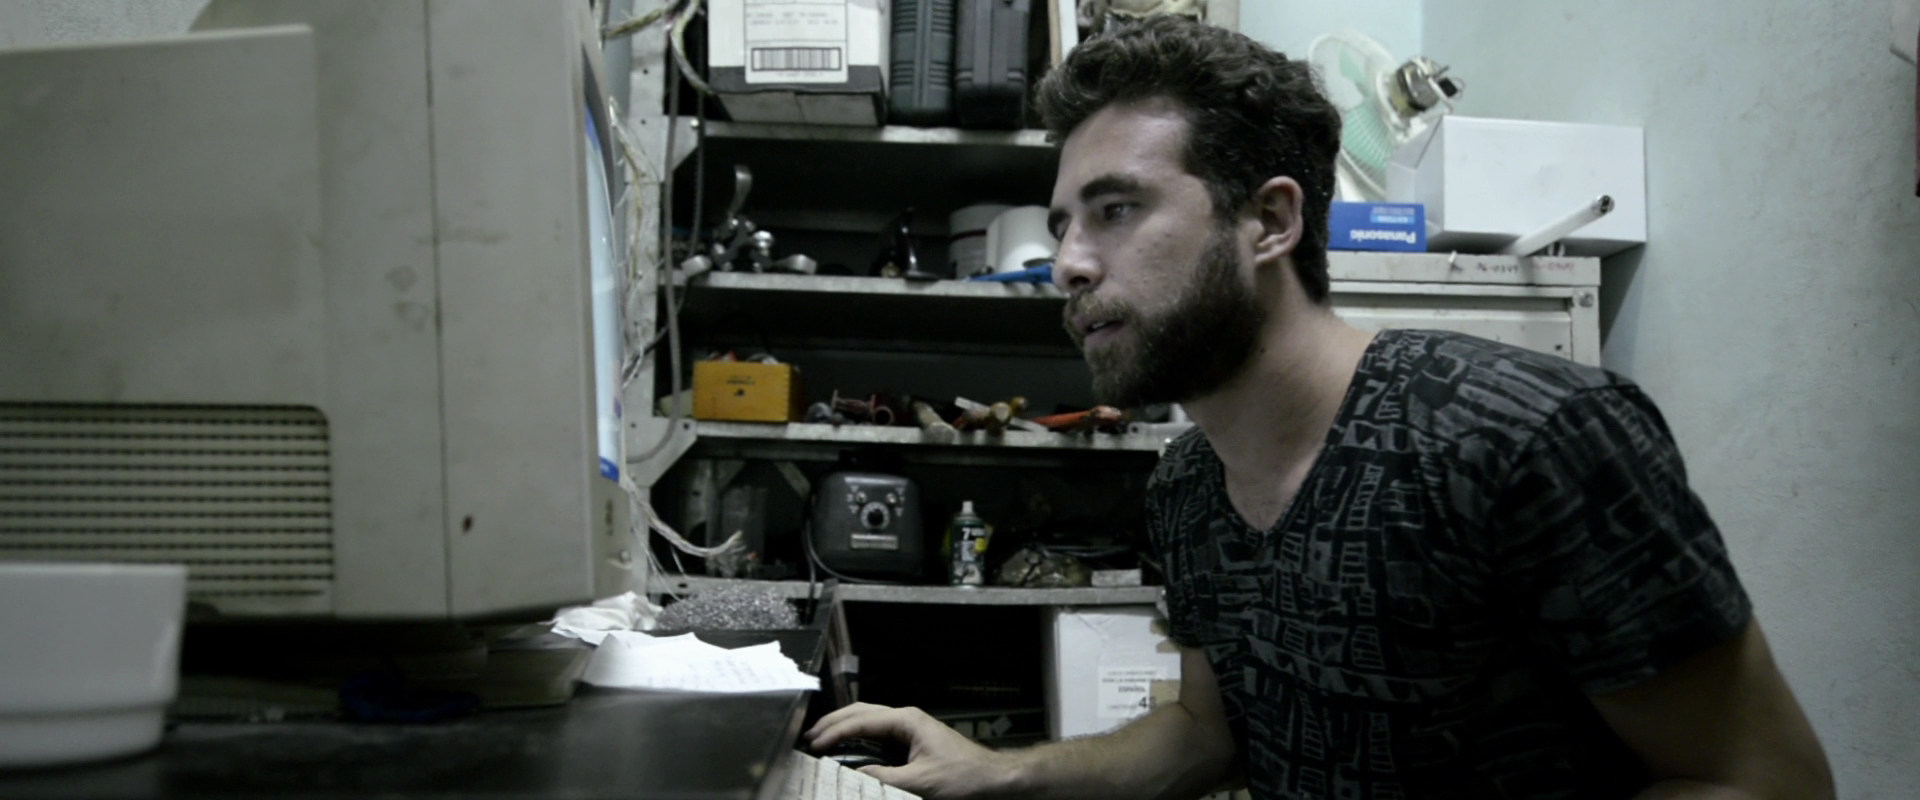 "This ""secret"" room seen in the film is where Juampa actually used to go to access the Internet when he lived in Cuba."